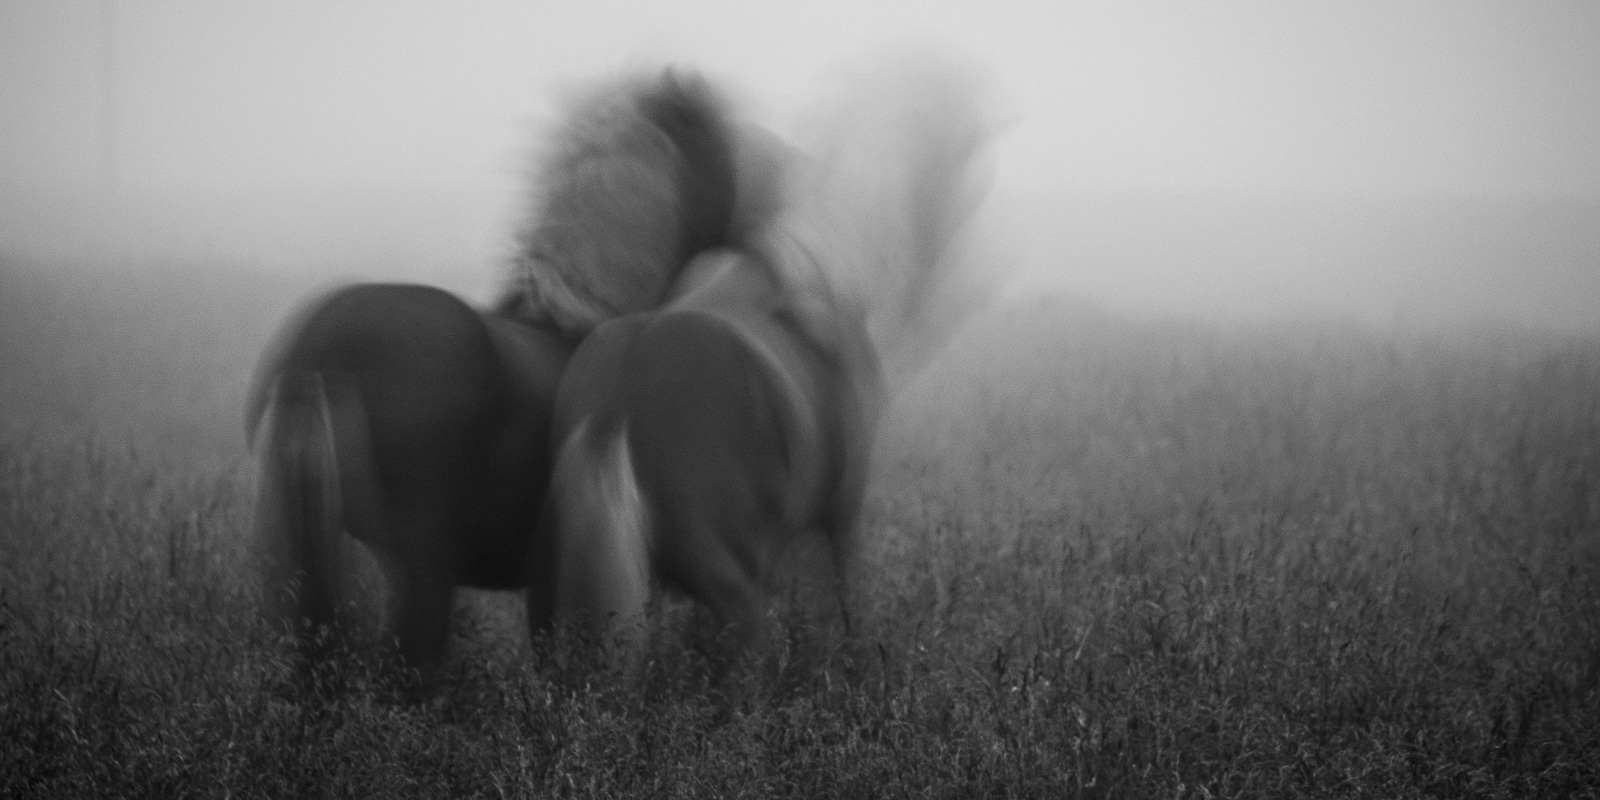 Story of Two Horses #4